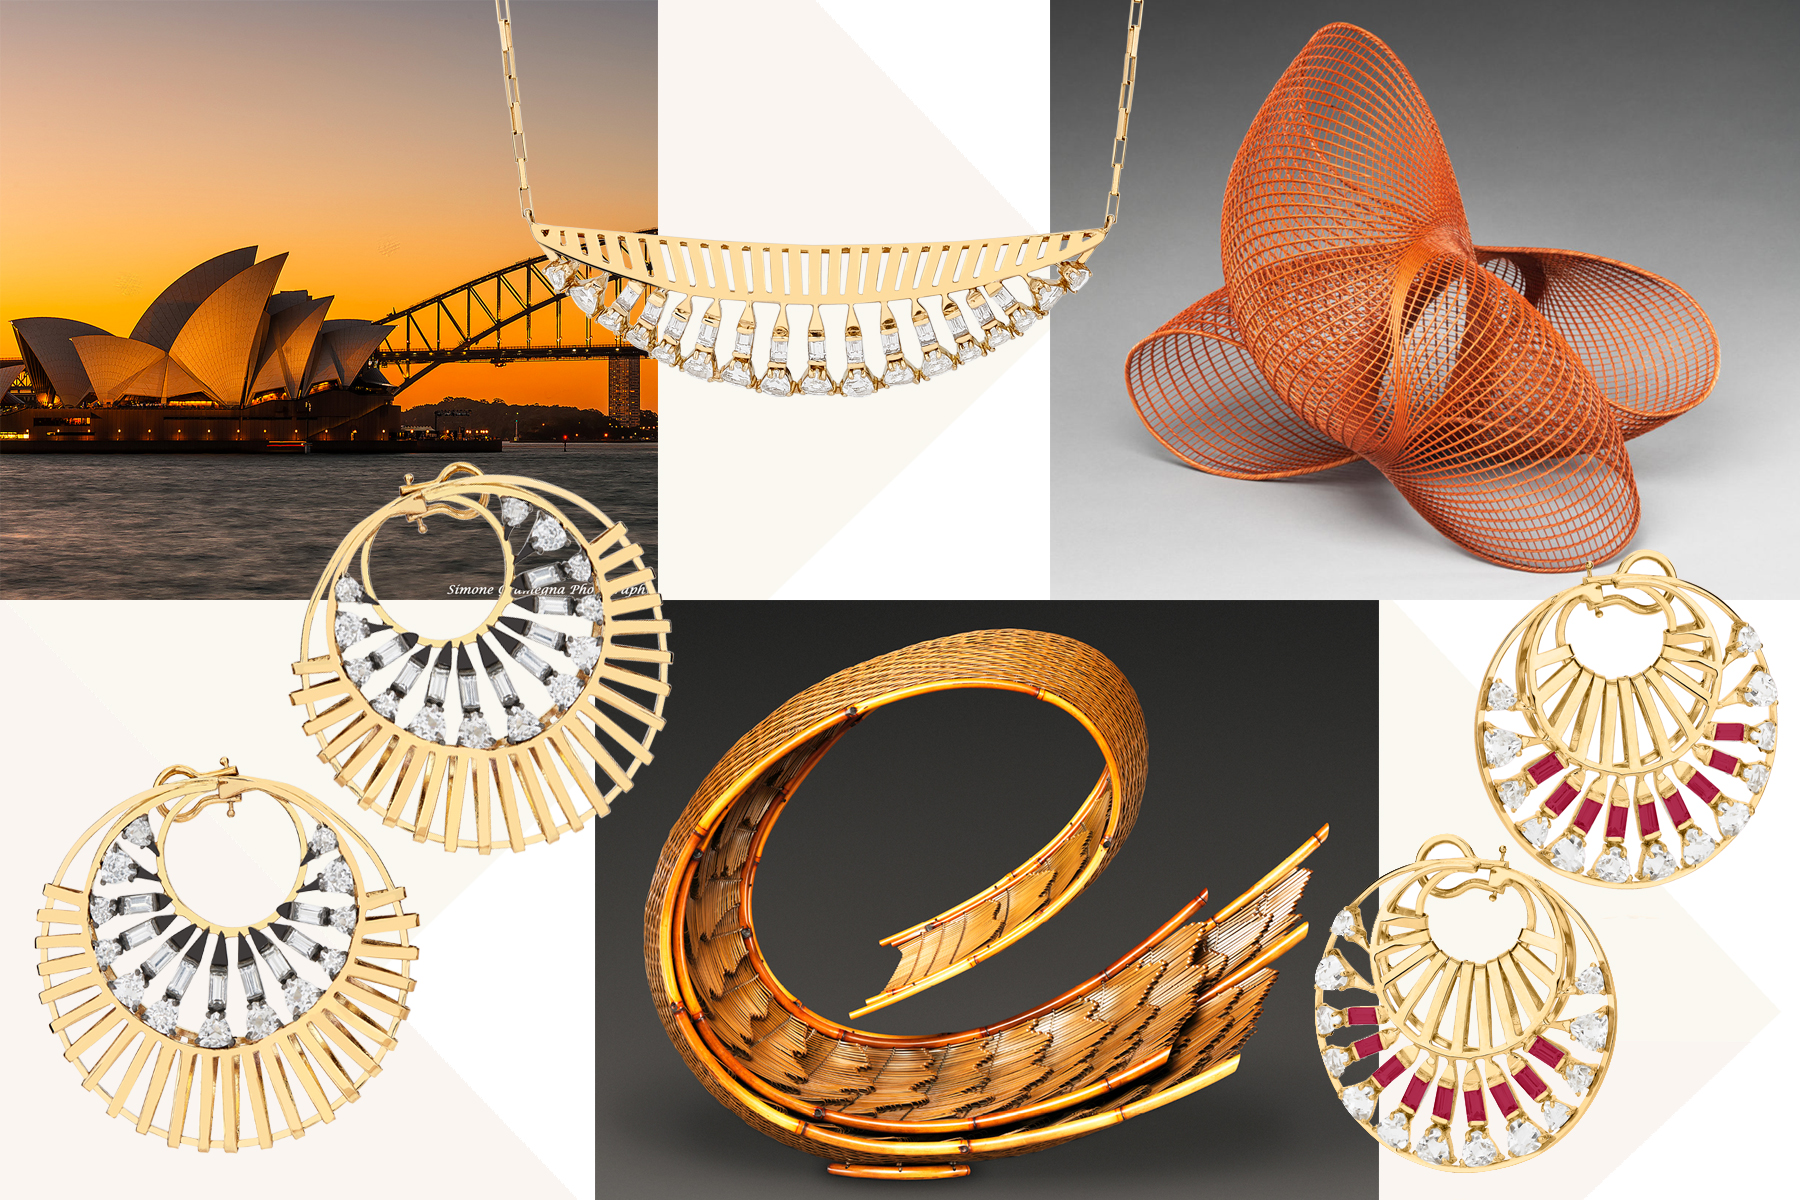 Jewellery from Carol Kauffmann's 'Trapeze' collection, and its inspirations